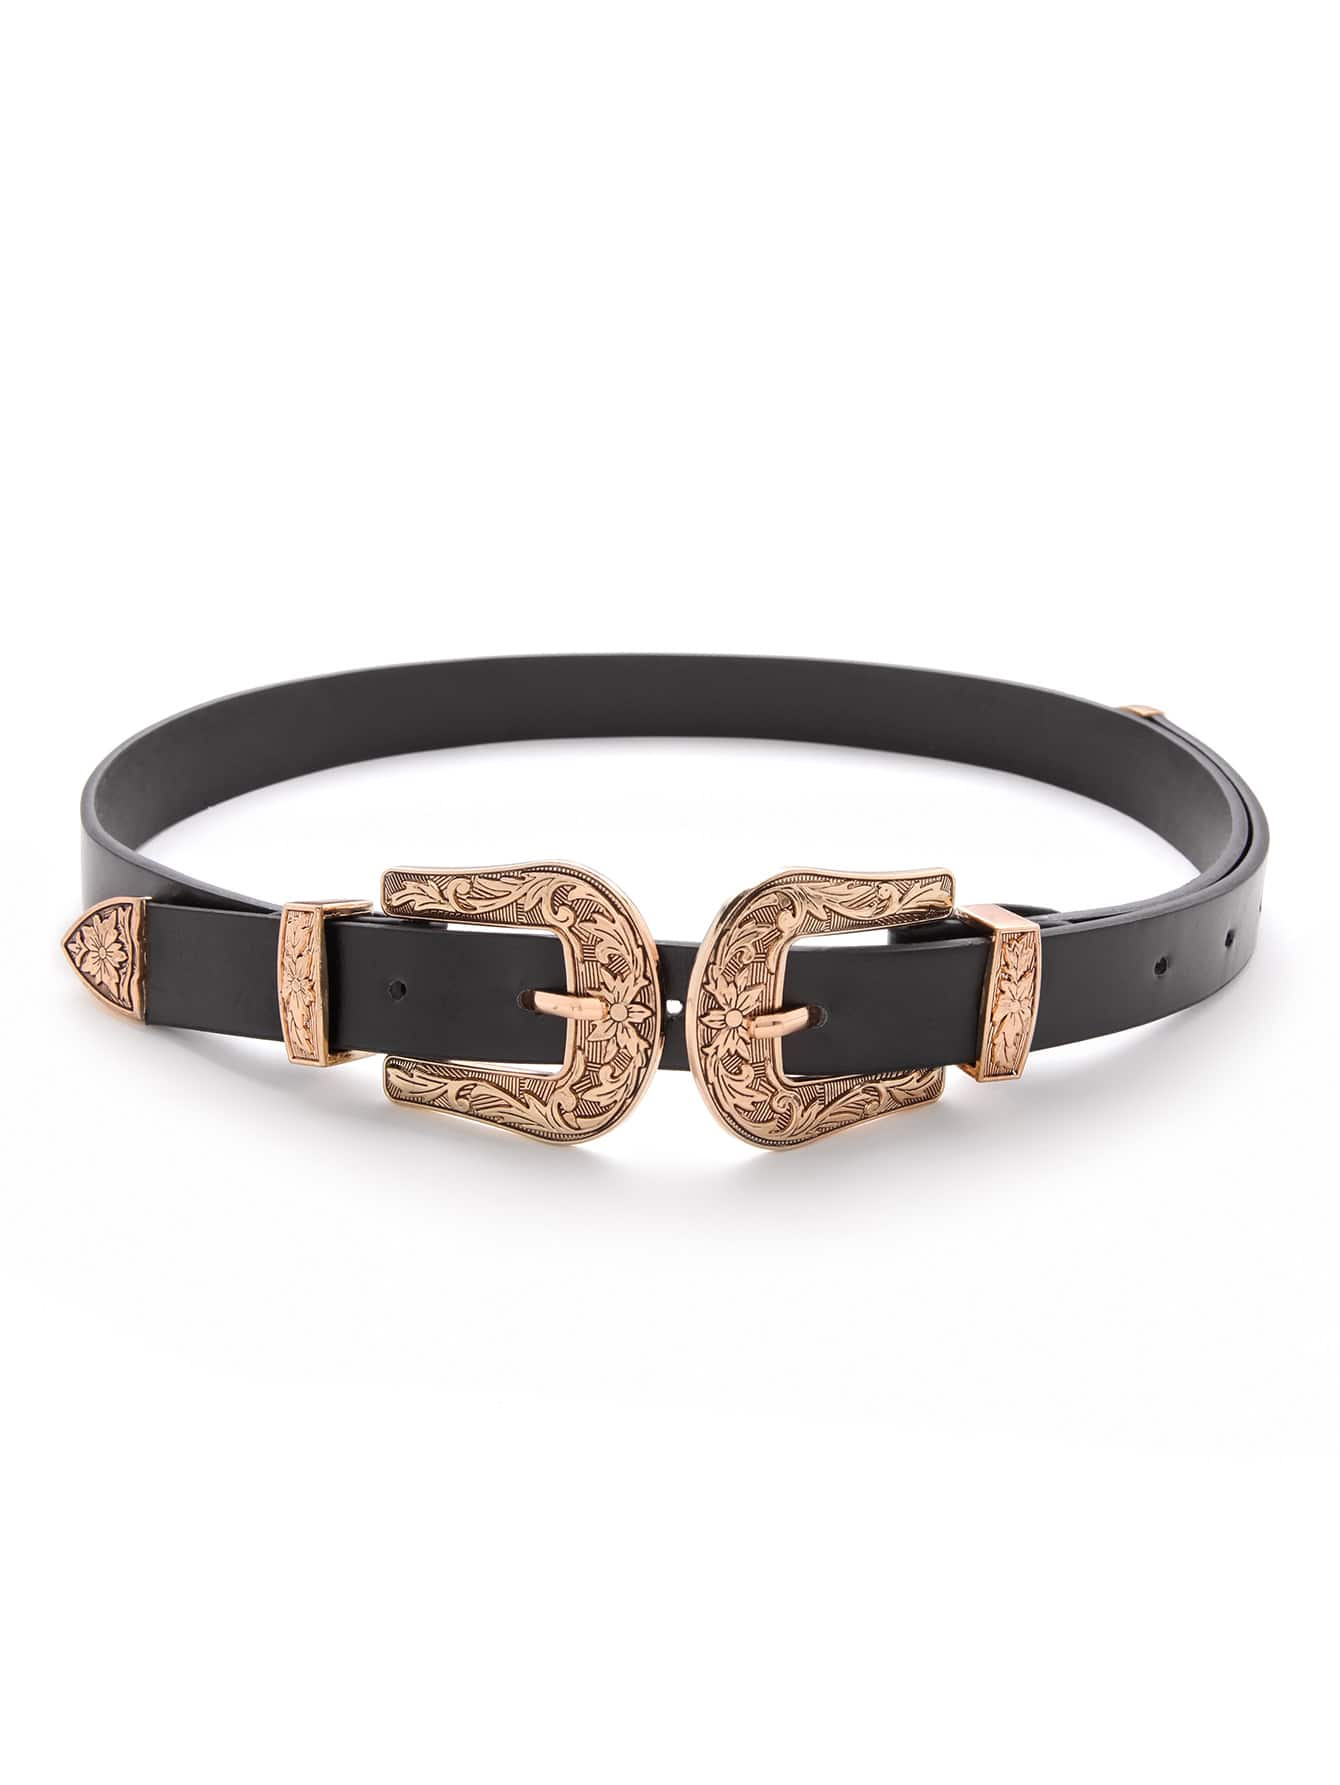 Double Buckle Western Belt double circle buckle belt